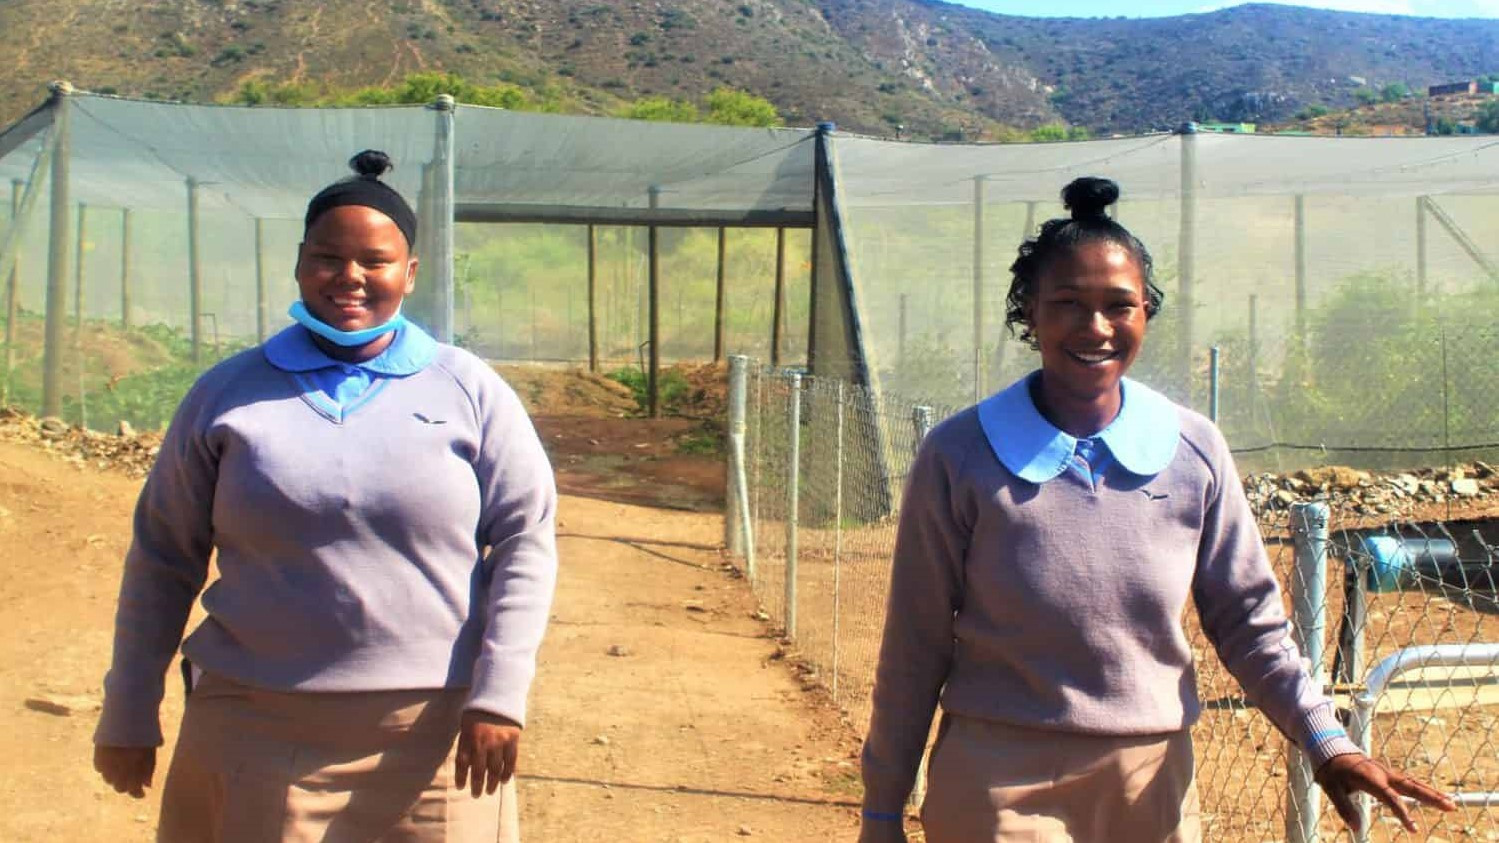 Mary-Ann Swart and Kathryn van Zyl are both agricultural students at the Jakes Gerwel Technical High School. They plan to pursue careers in agriculture. Photo: Food For Mzansi